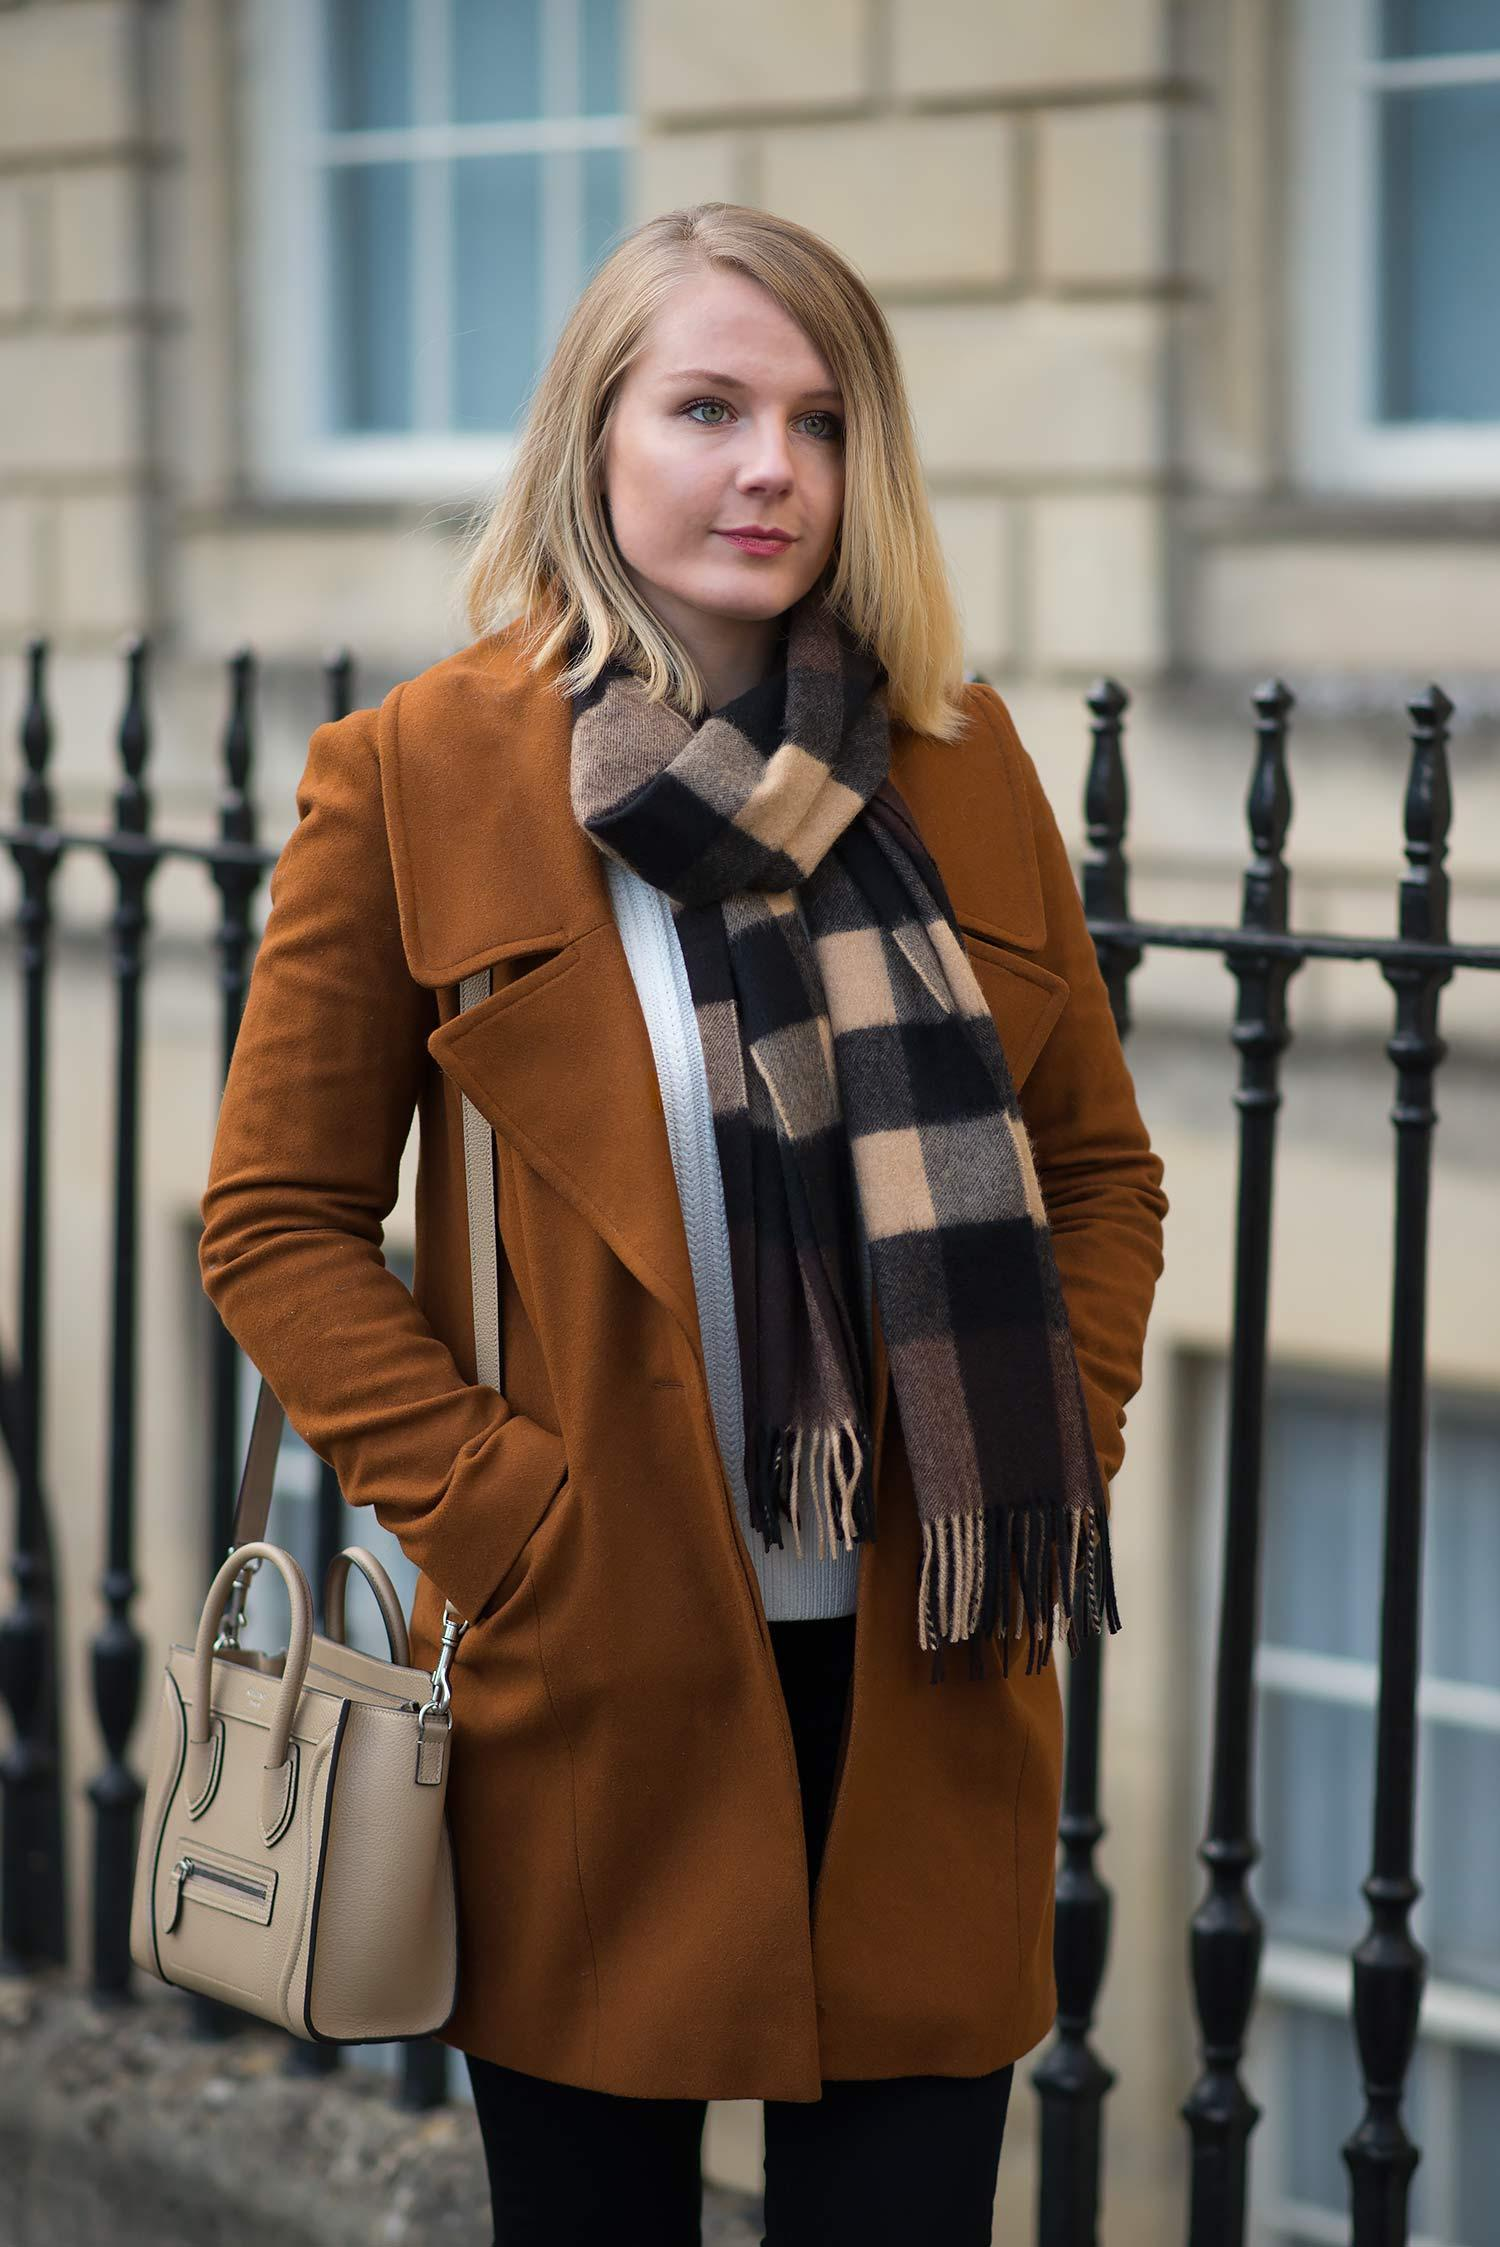 burberry-plaid-scarf-chesnut-brown-coat-outfit